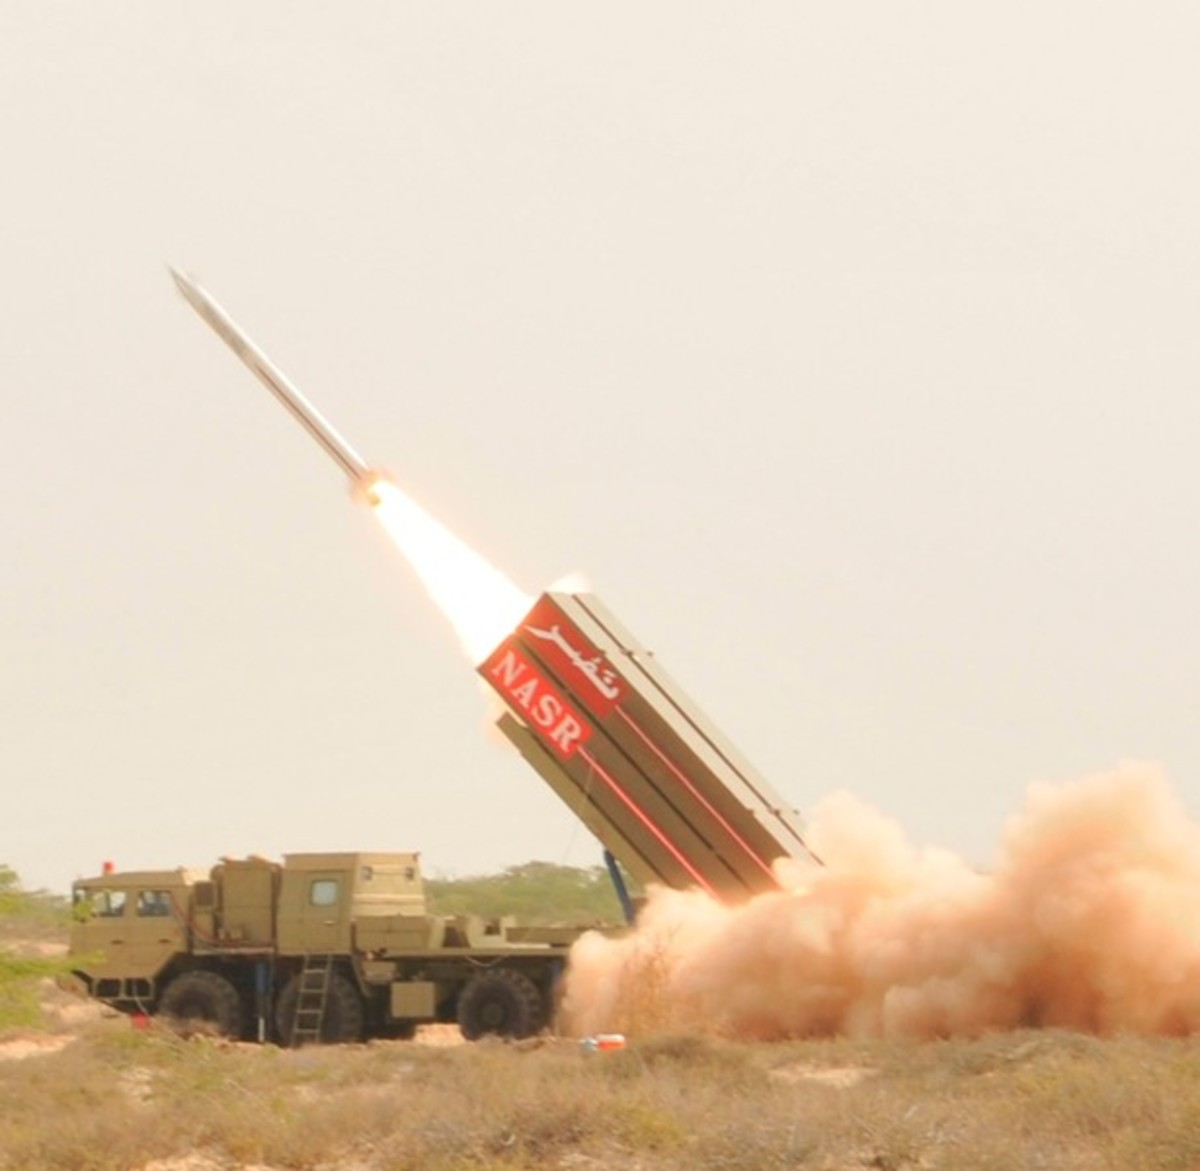 Pakistan's Nuclear Program - Why is it Necessary?